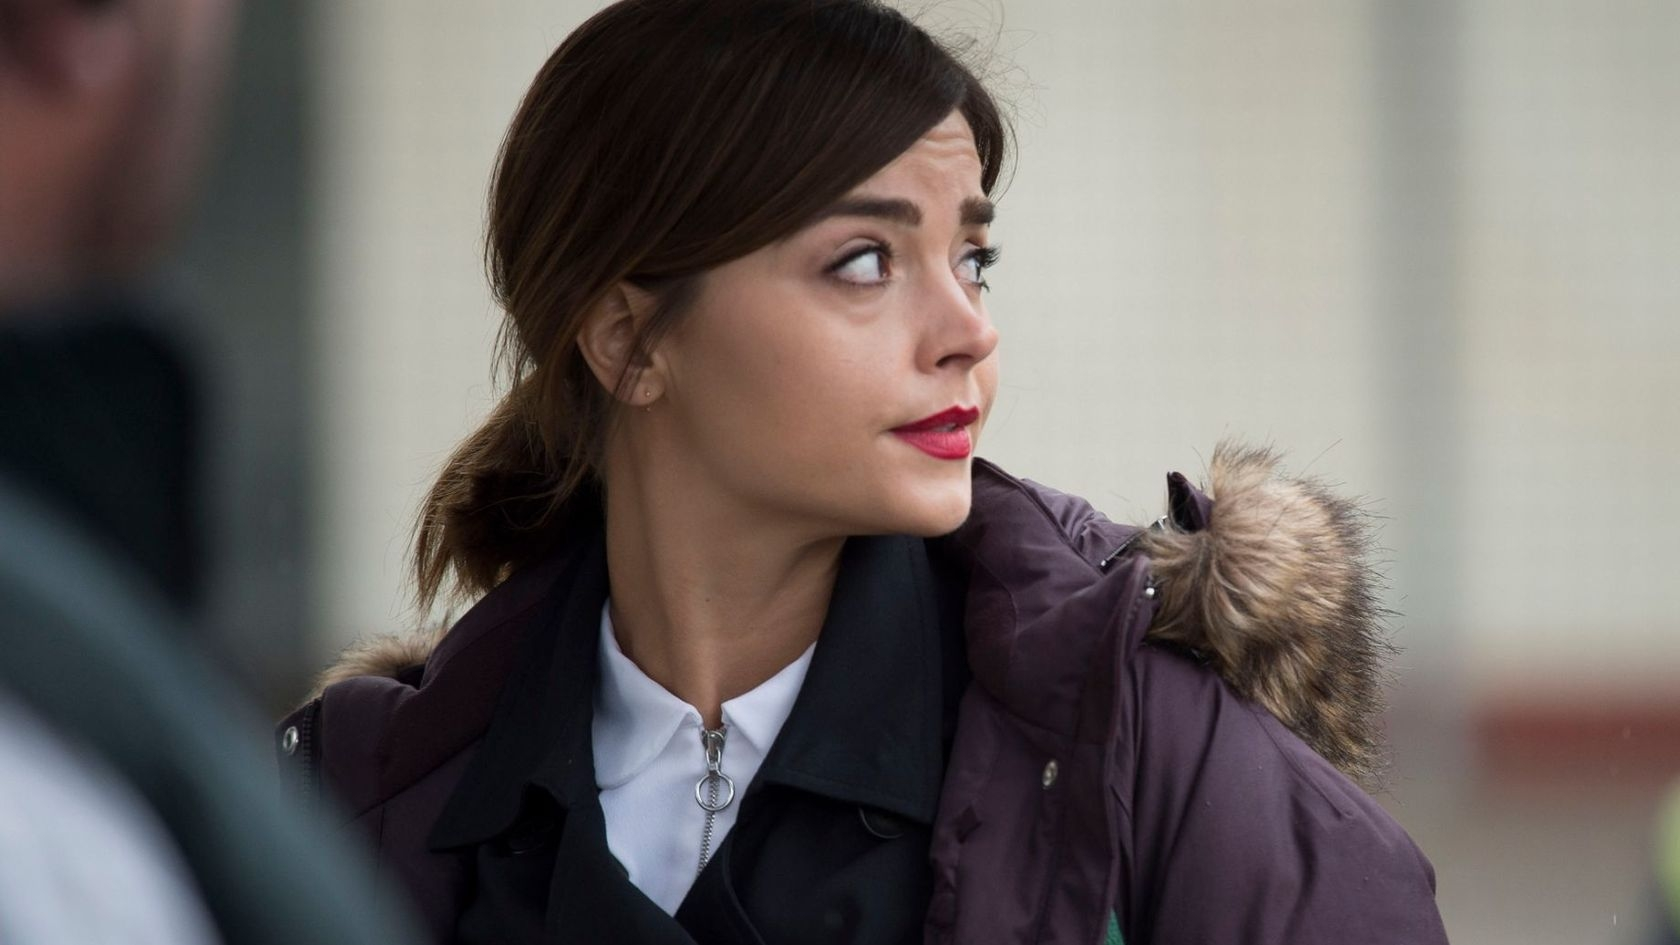 Jenna Coleman from Doctor Who for 1680 x 945 HDTV resolution